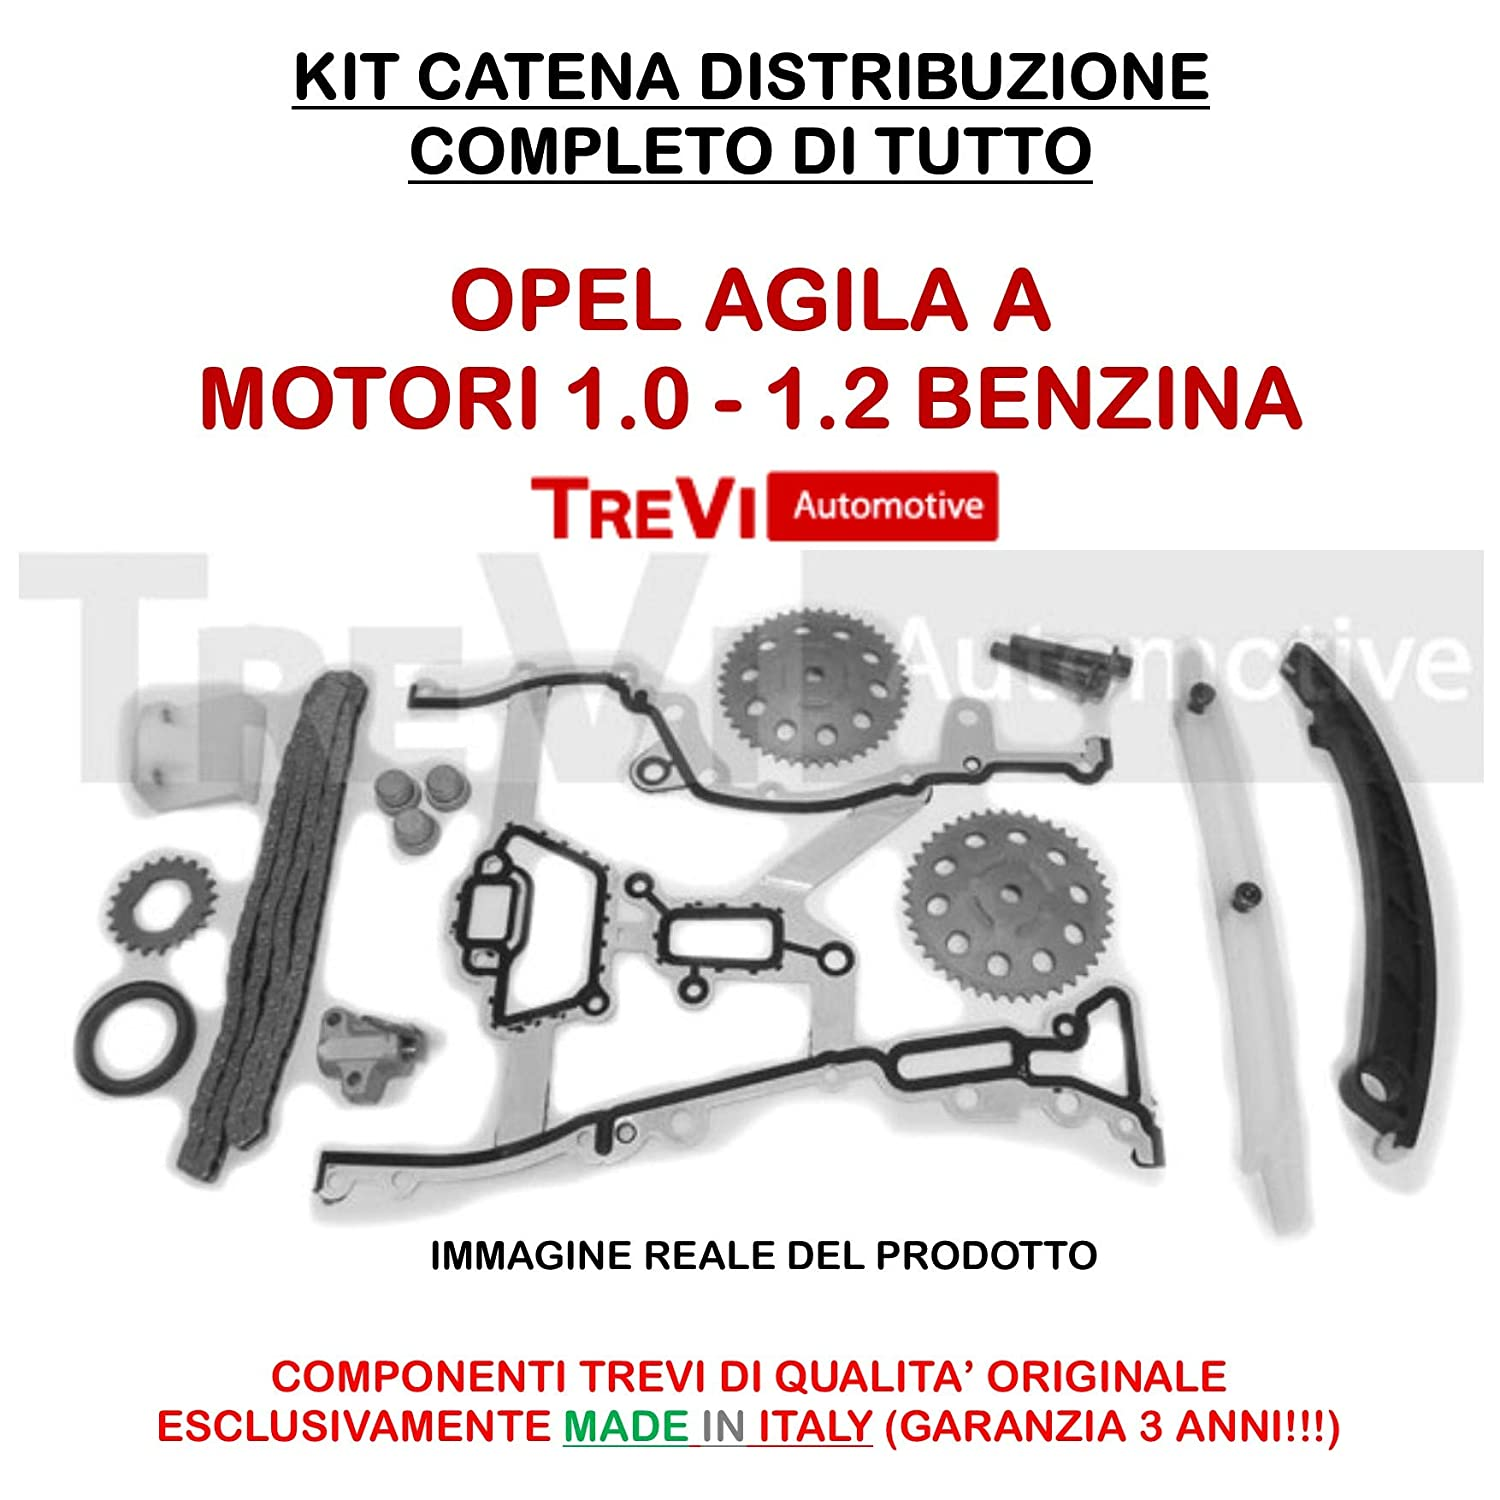 KIT CATENA DISTRIBUZIONE COMPLETO TREVI AUTOMOTIVE CODICE KC1021